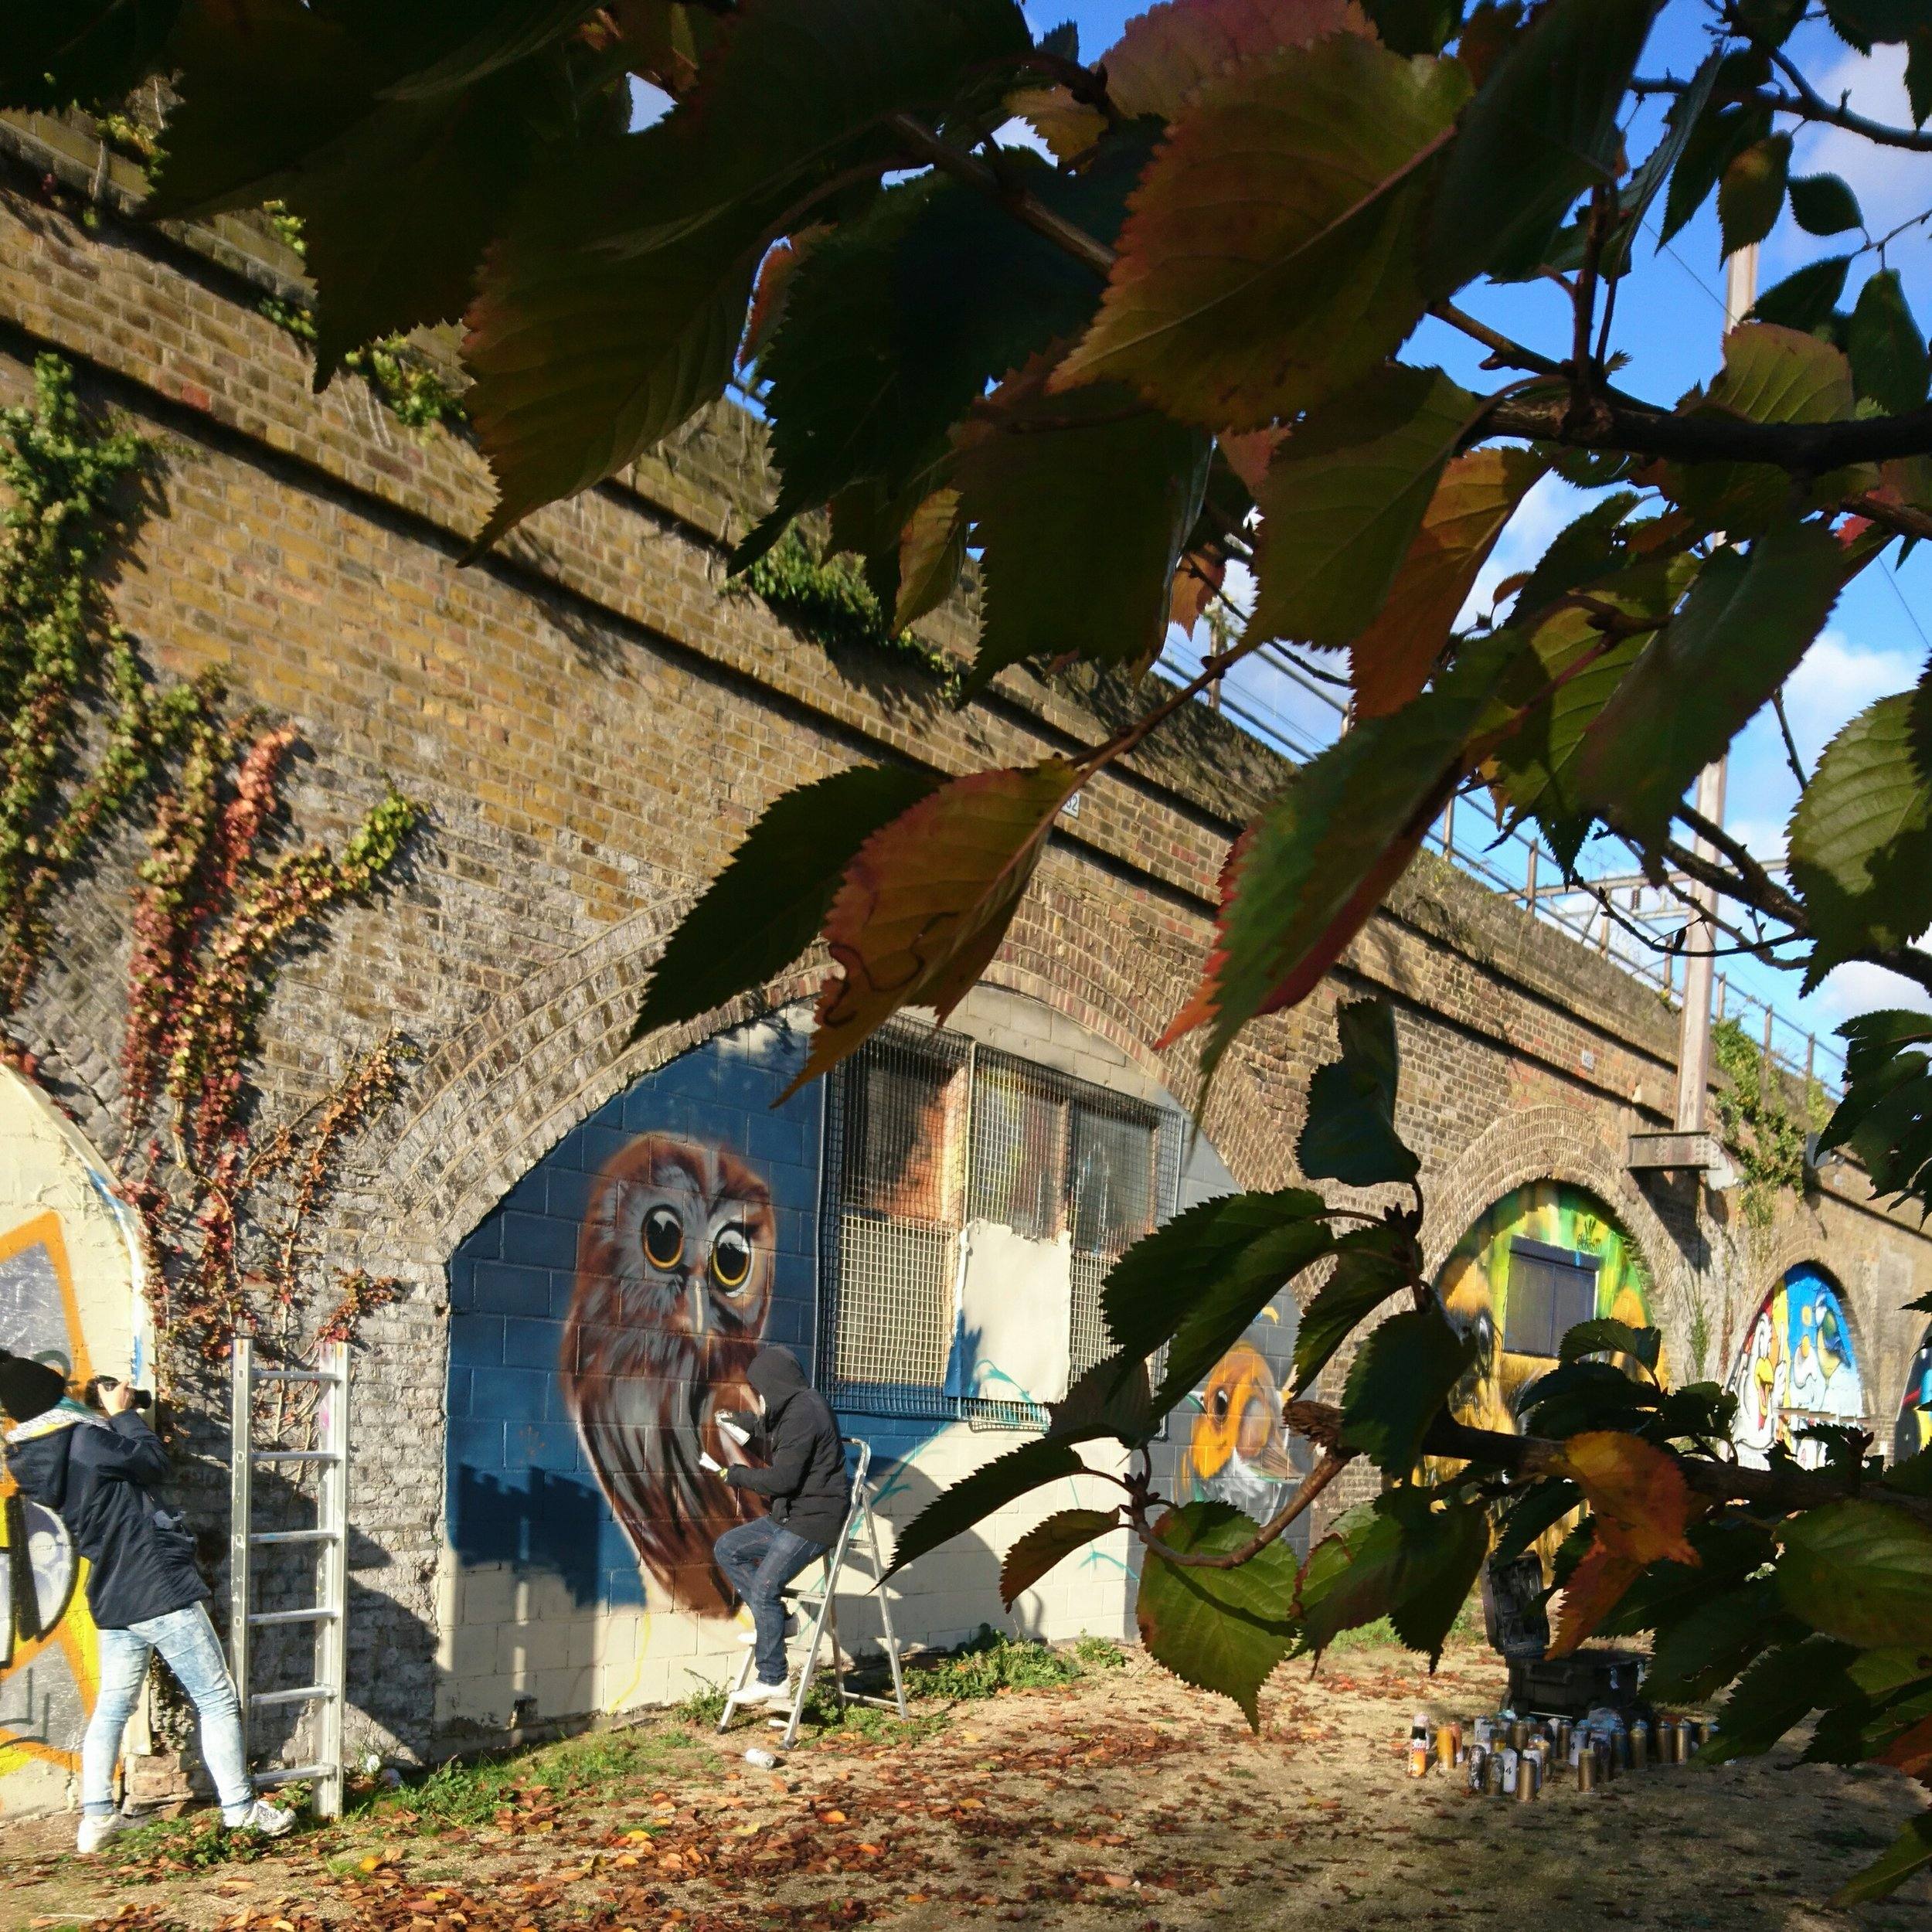 Nature Mural Project in Tower Hamlets, Supported by GreatArt and Brewers Paint